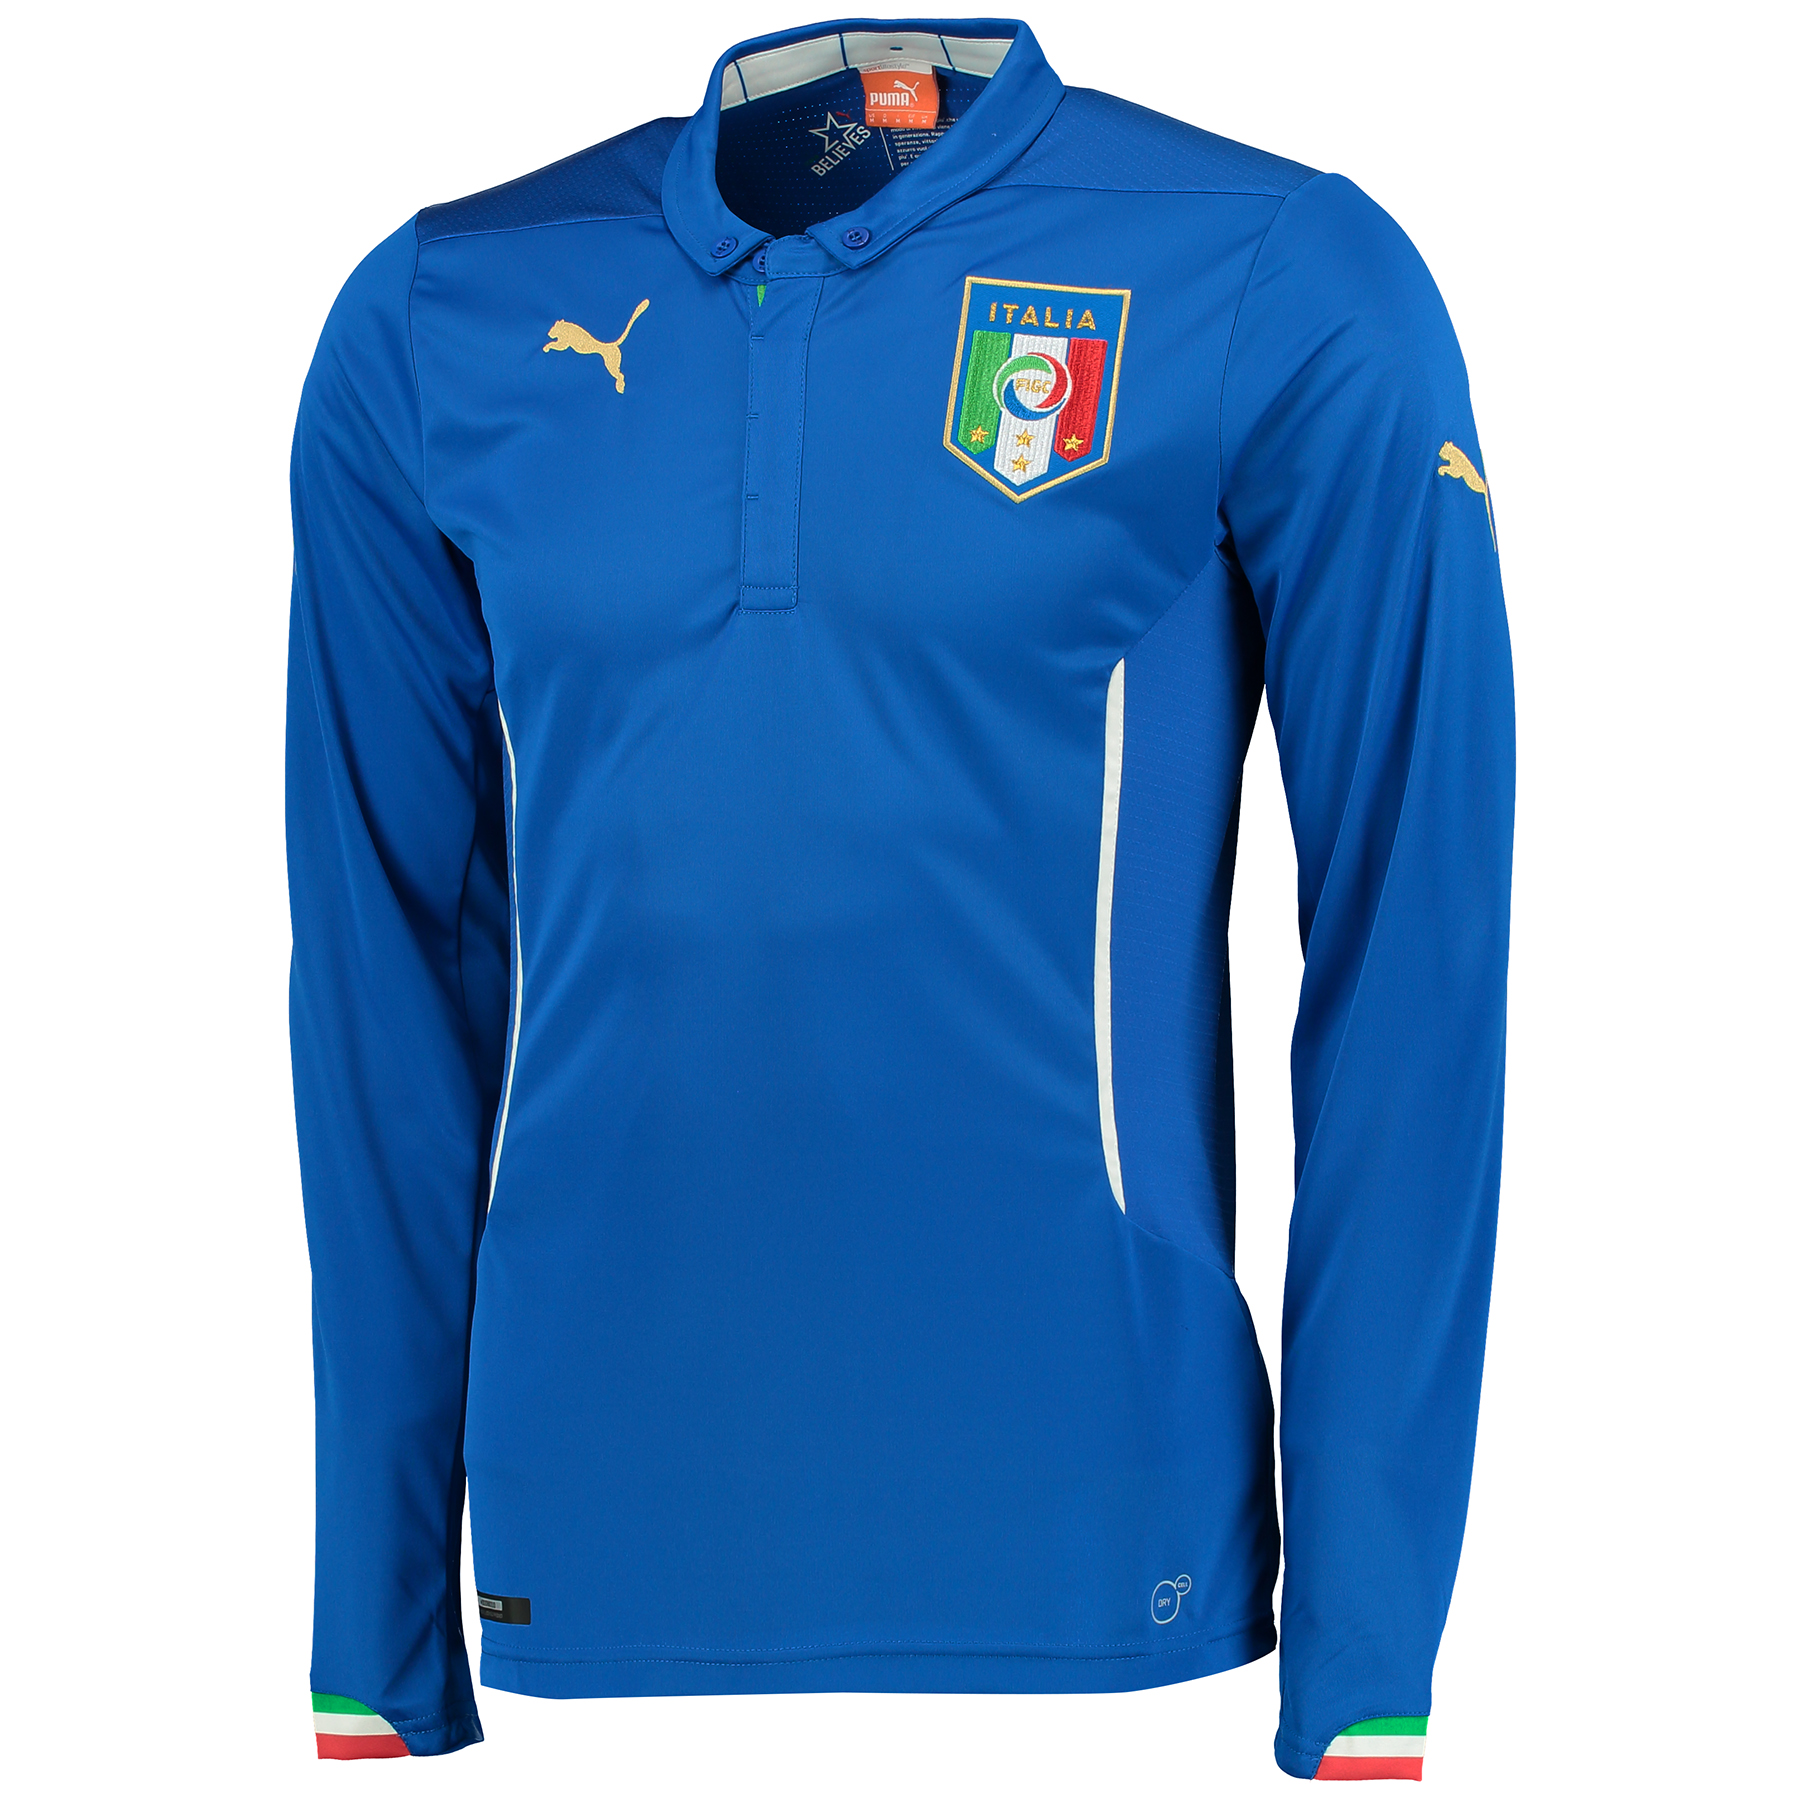 Italy Home Shirt 2014/15 - Long Sleeved